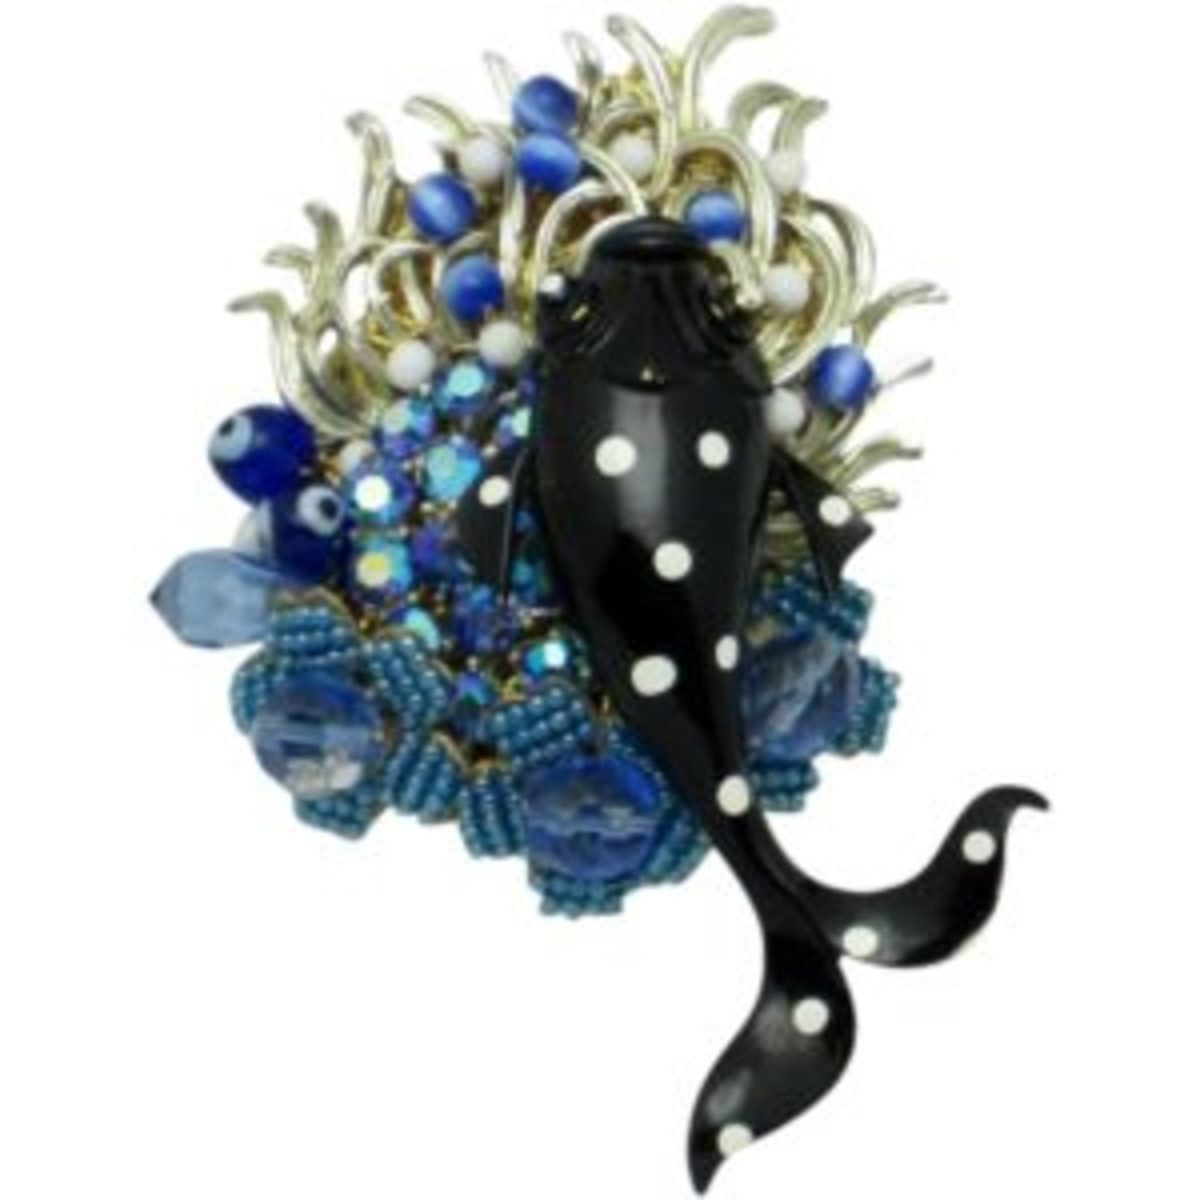 Very Unique and gorgeous Stanley Hagler, N.Y.C. Under the Sea rhinestone, seed pearl, crystal, art glass, enamel and gilt figural fish brooch or pin. The brooch features a large black enamel fish with white enamel circles. The fish is mounted on blue seed pearl flowers with crystal centers which is a Hagler classic. $169. Courtesy of Ruby Lane